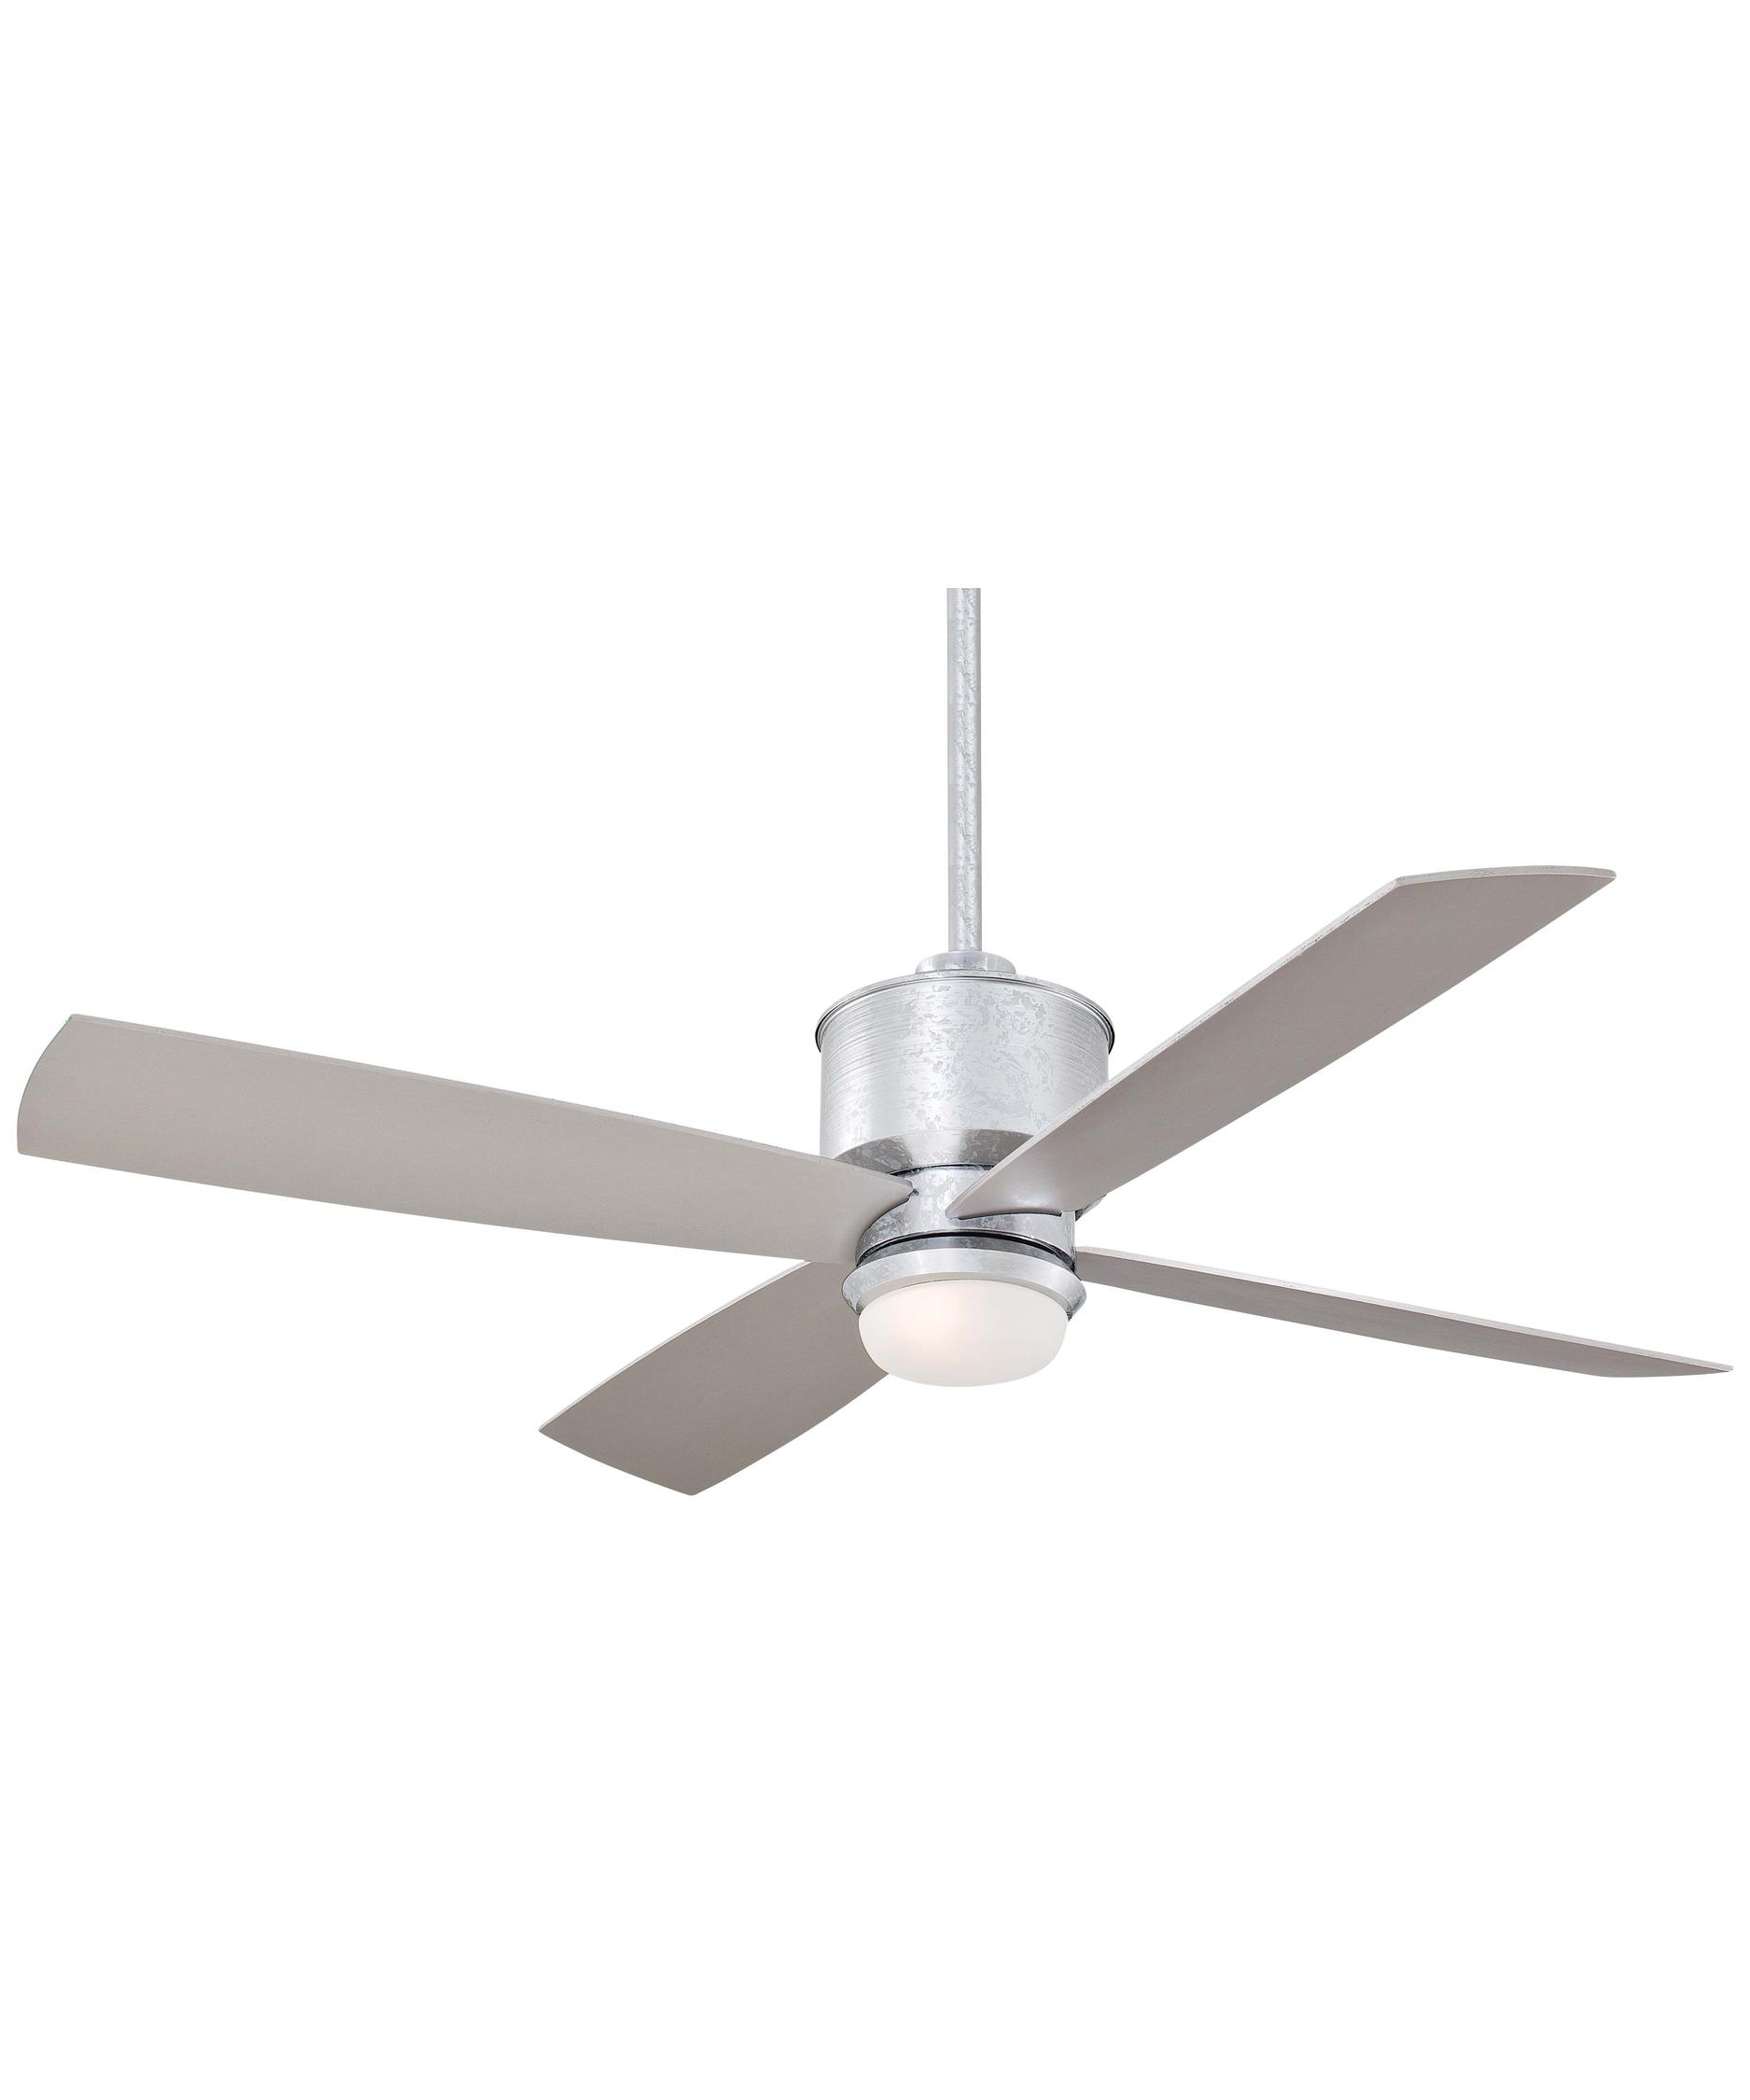 52 Inch Outdoor Ceiling Fans With Lights Within Most Recently Released Minka Aire F734 Strata 52 Inch 4 Blade Ceiling Fan (Gallery 9 of 20)